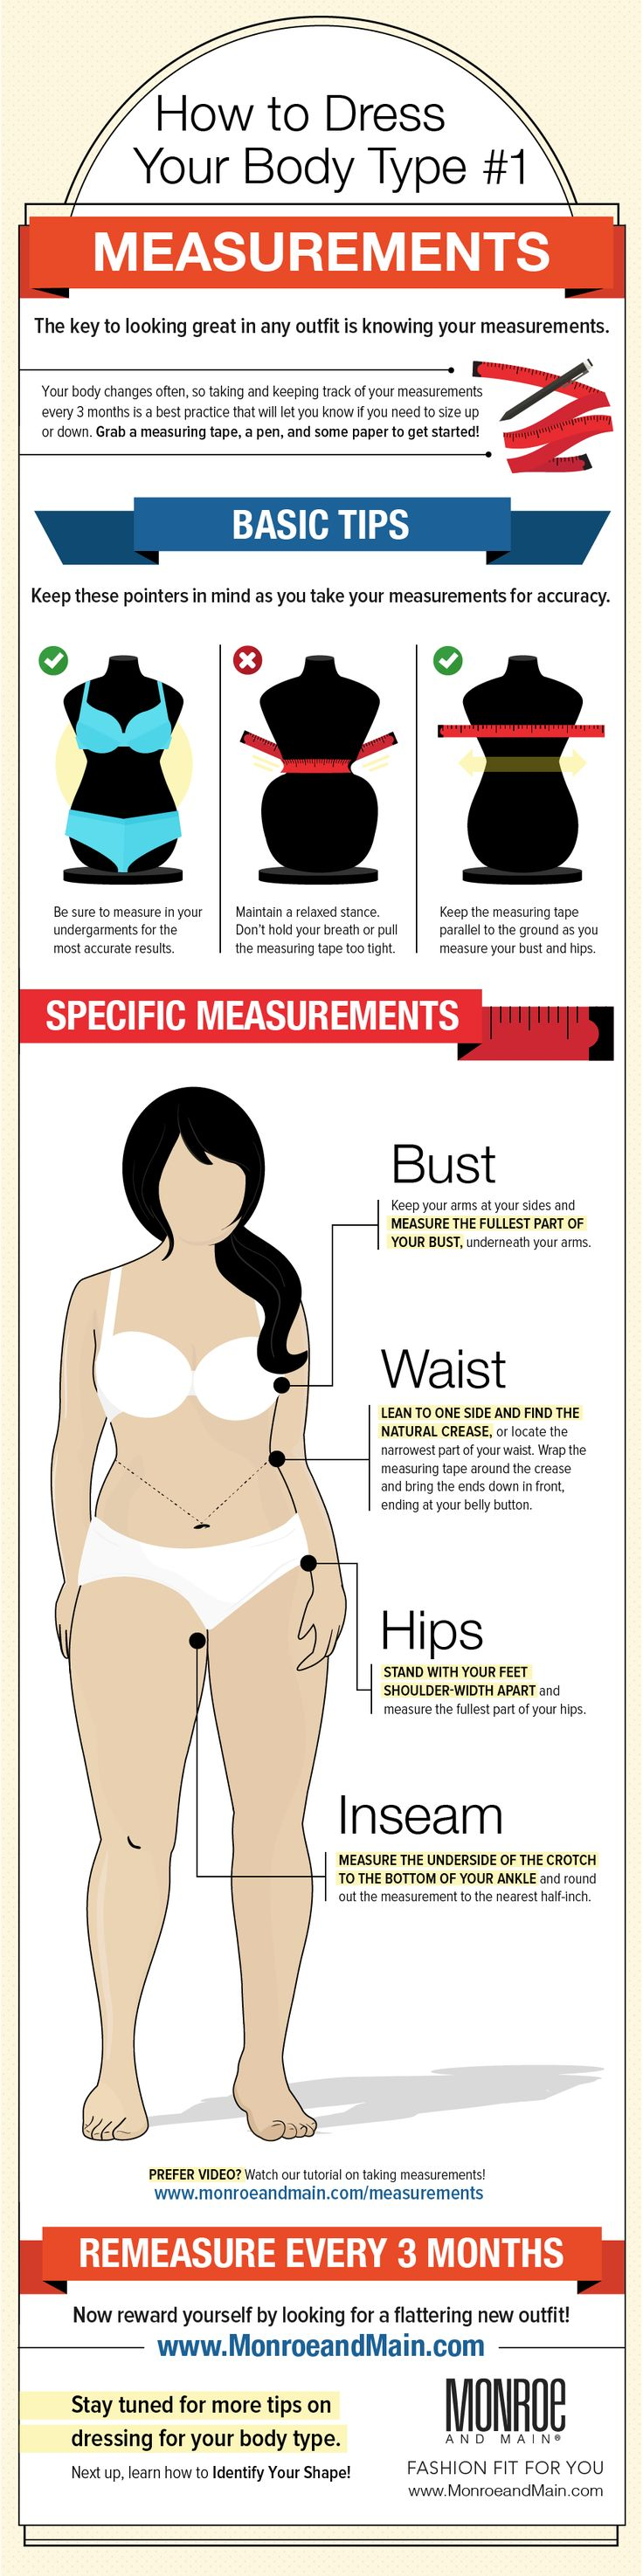 How to dress an apple shaped figure ehow - Infographic How To Dress Your Body Type Measurements